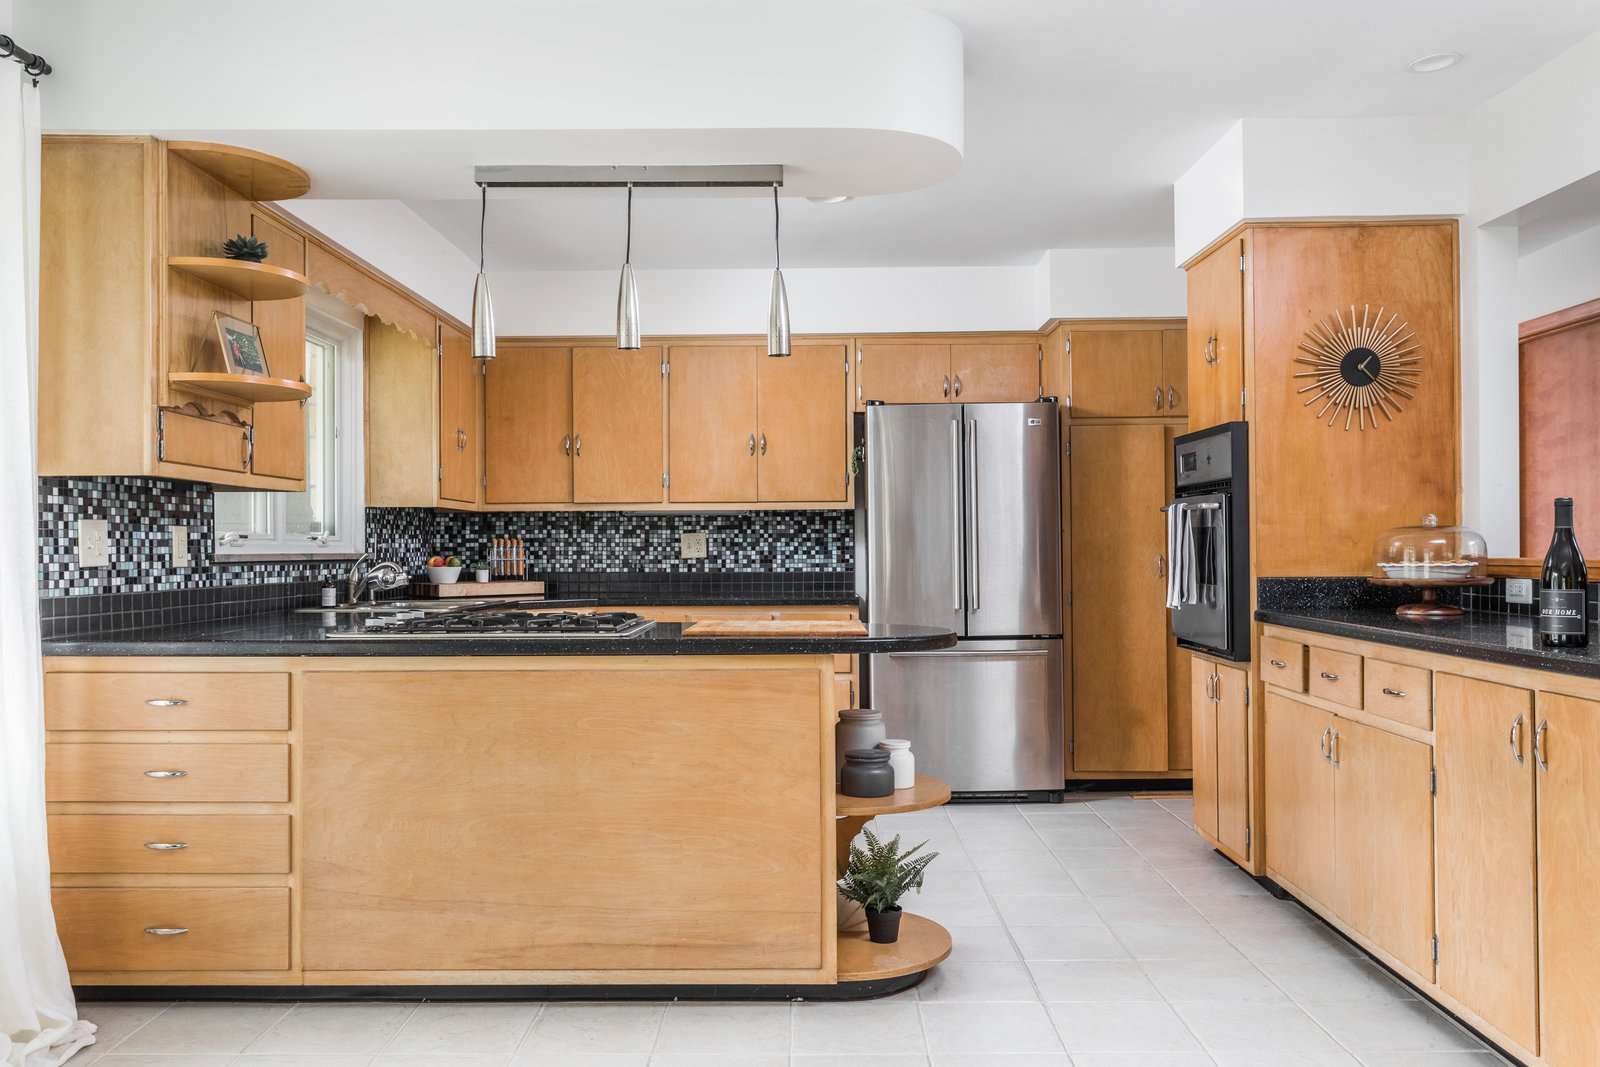 the-old-kitchen-was-restored-and-refreshed.jpg